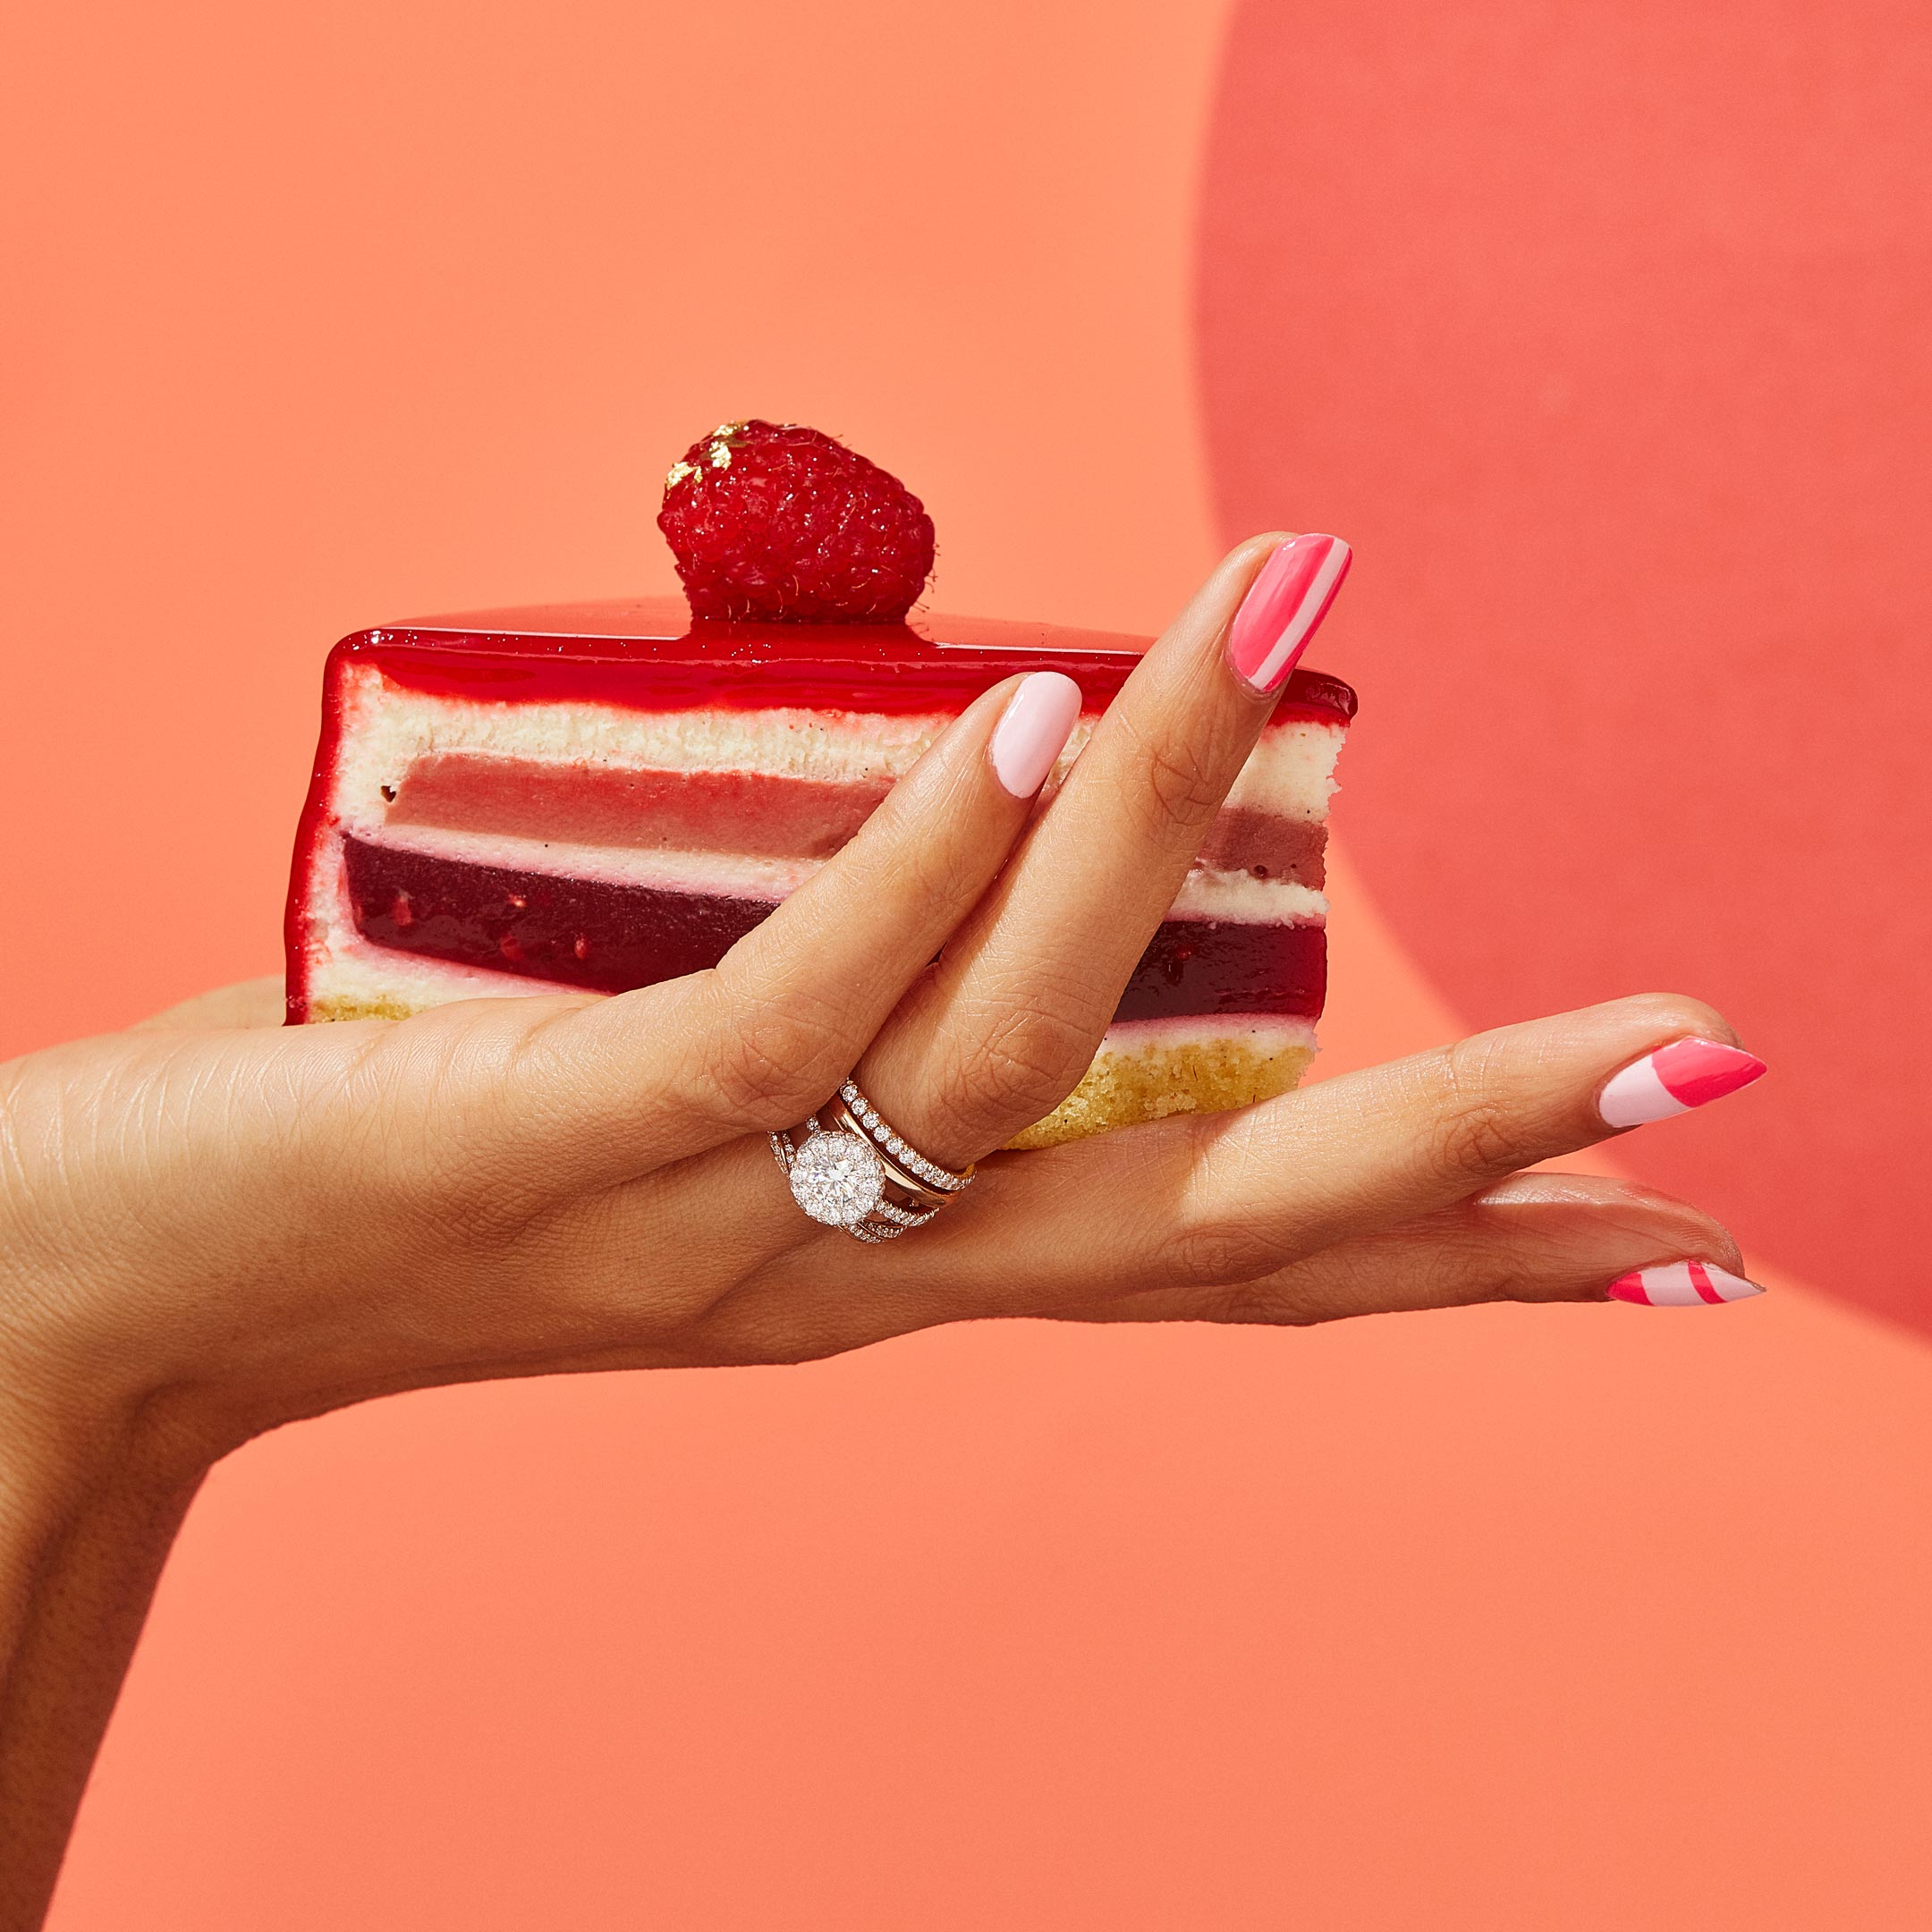 Eloise Round Brilliant Seamless Halo® Engagement Ring with a diamond pavé band in 18k Rose Gold Hand with Cake Lifestyle by Oui by Jean Dousset